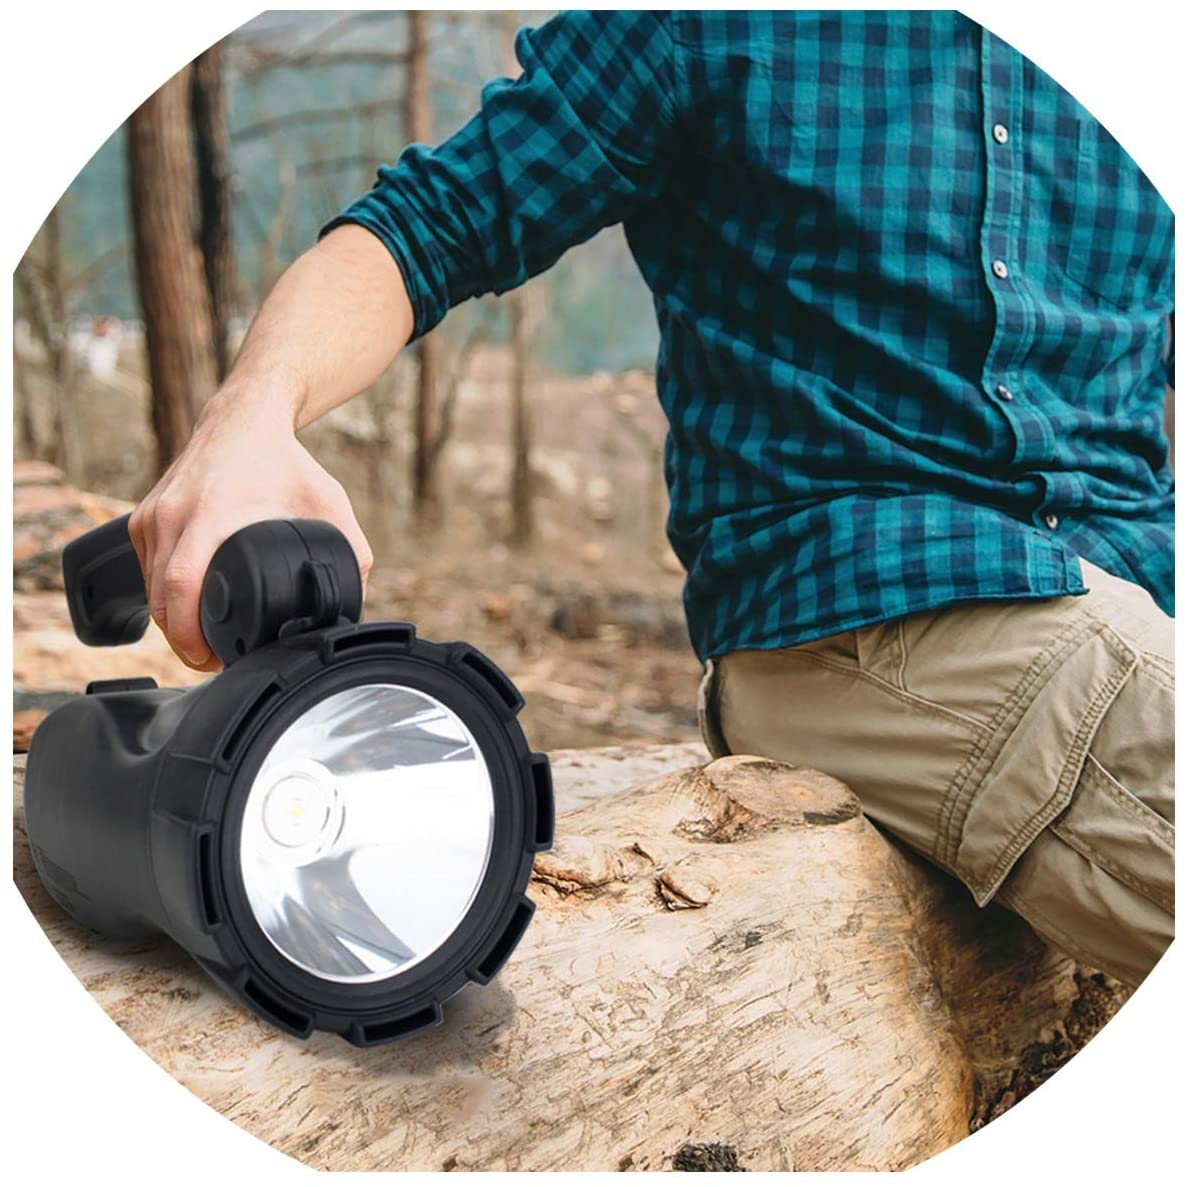 ALWAYS ME Portable Spotlight Searchlight 3W Handheld Rechargeable Search Light Flashlight Waterproof for Outdoor Camping Lighting